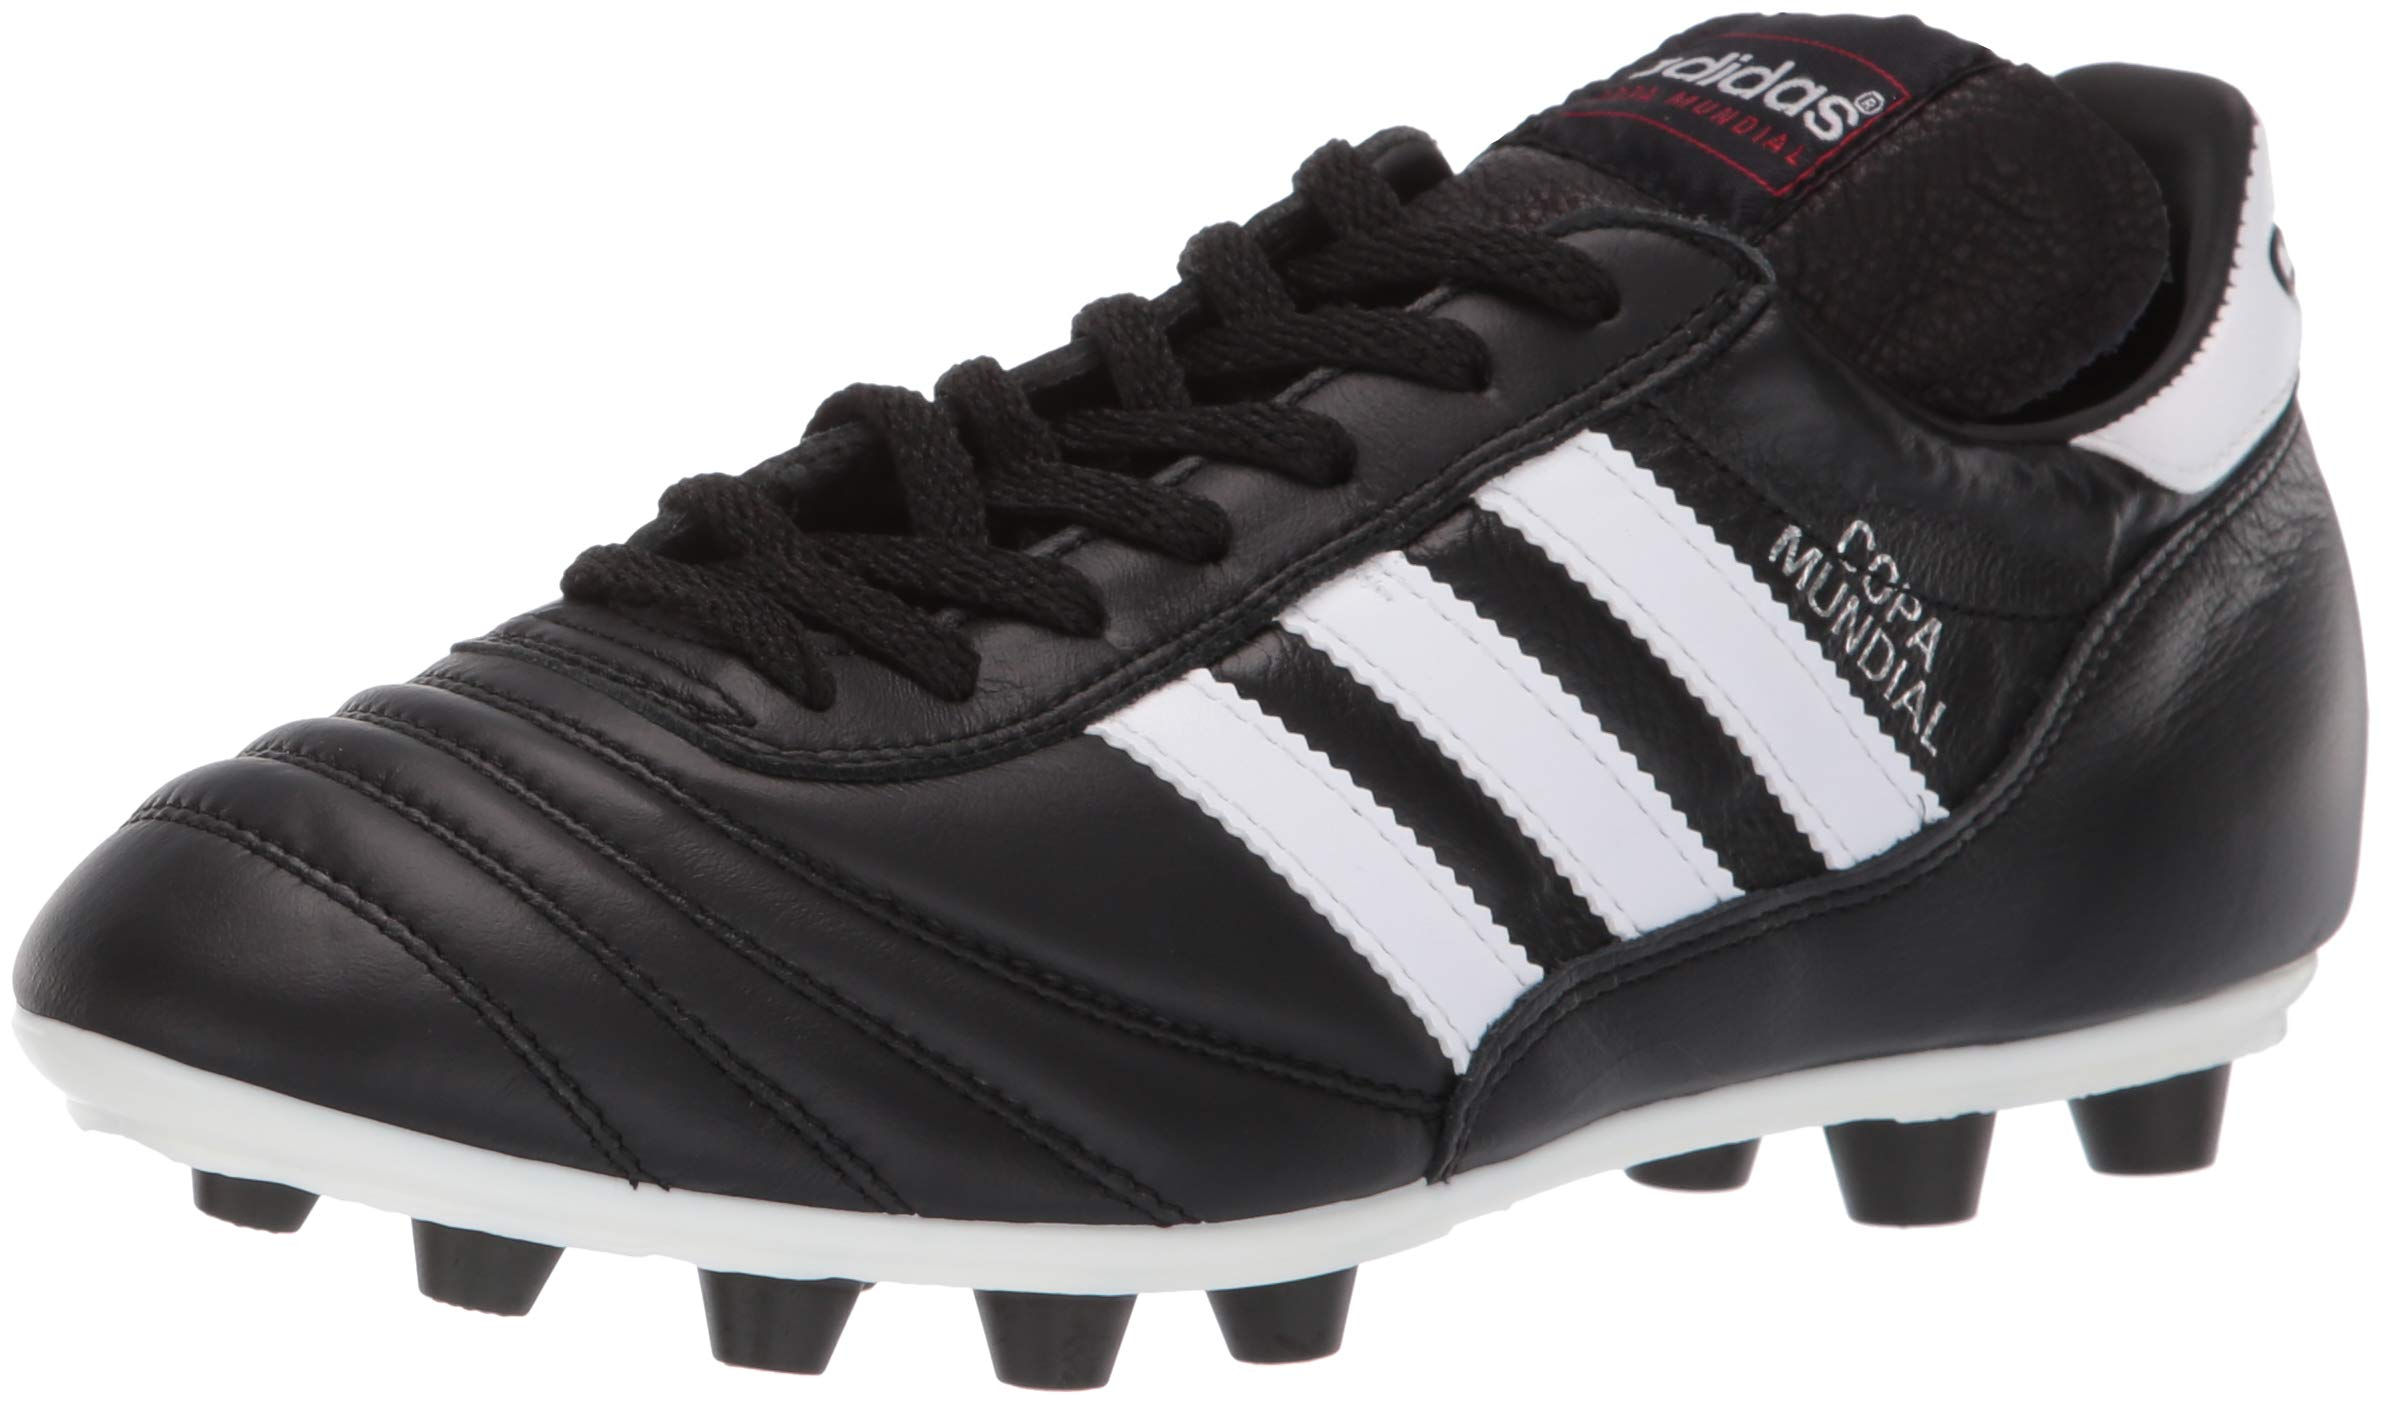 6445fbb73 Galleon - Adidas Copa Mundial FG Firm Ground Mens Soccer Boot Black White -  US 9.5